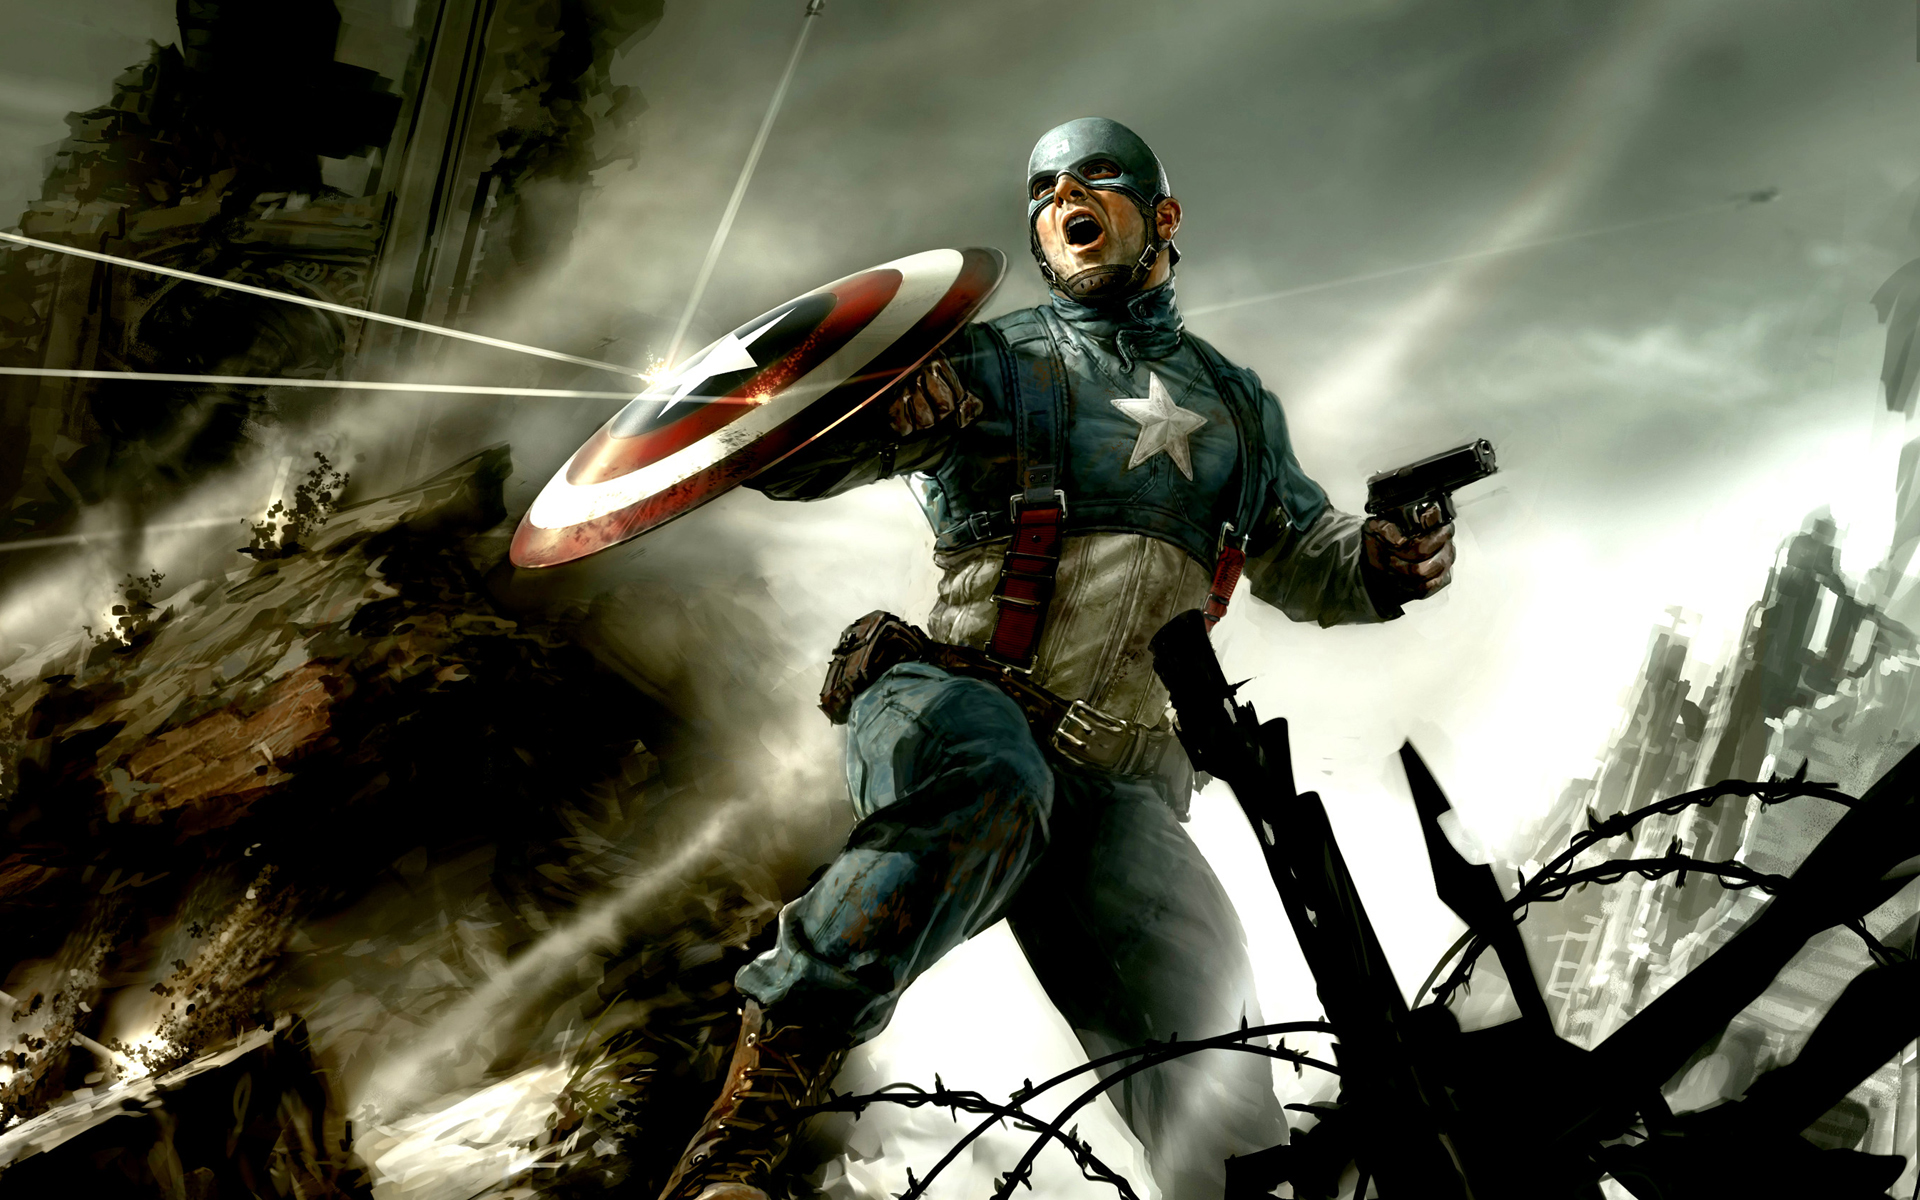 Captain America CG 1000.86 Kb